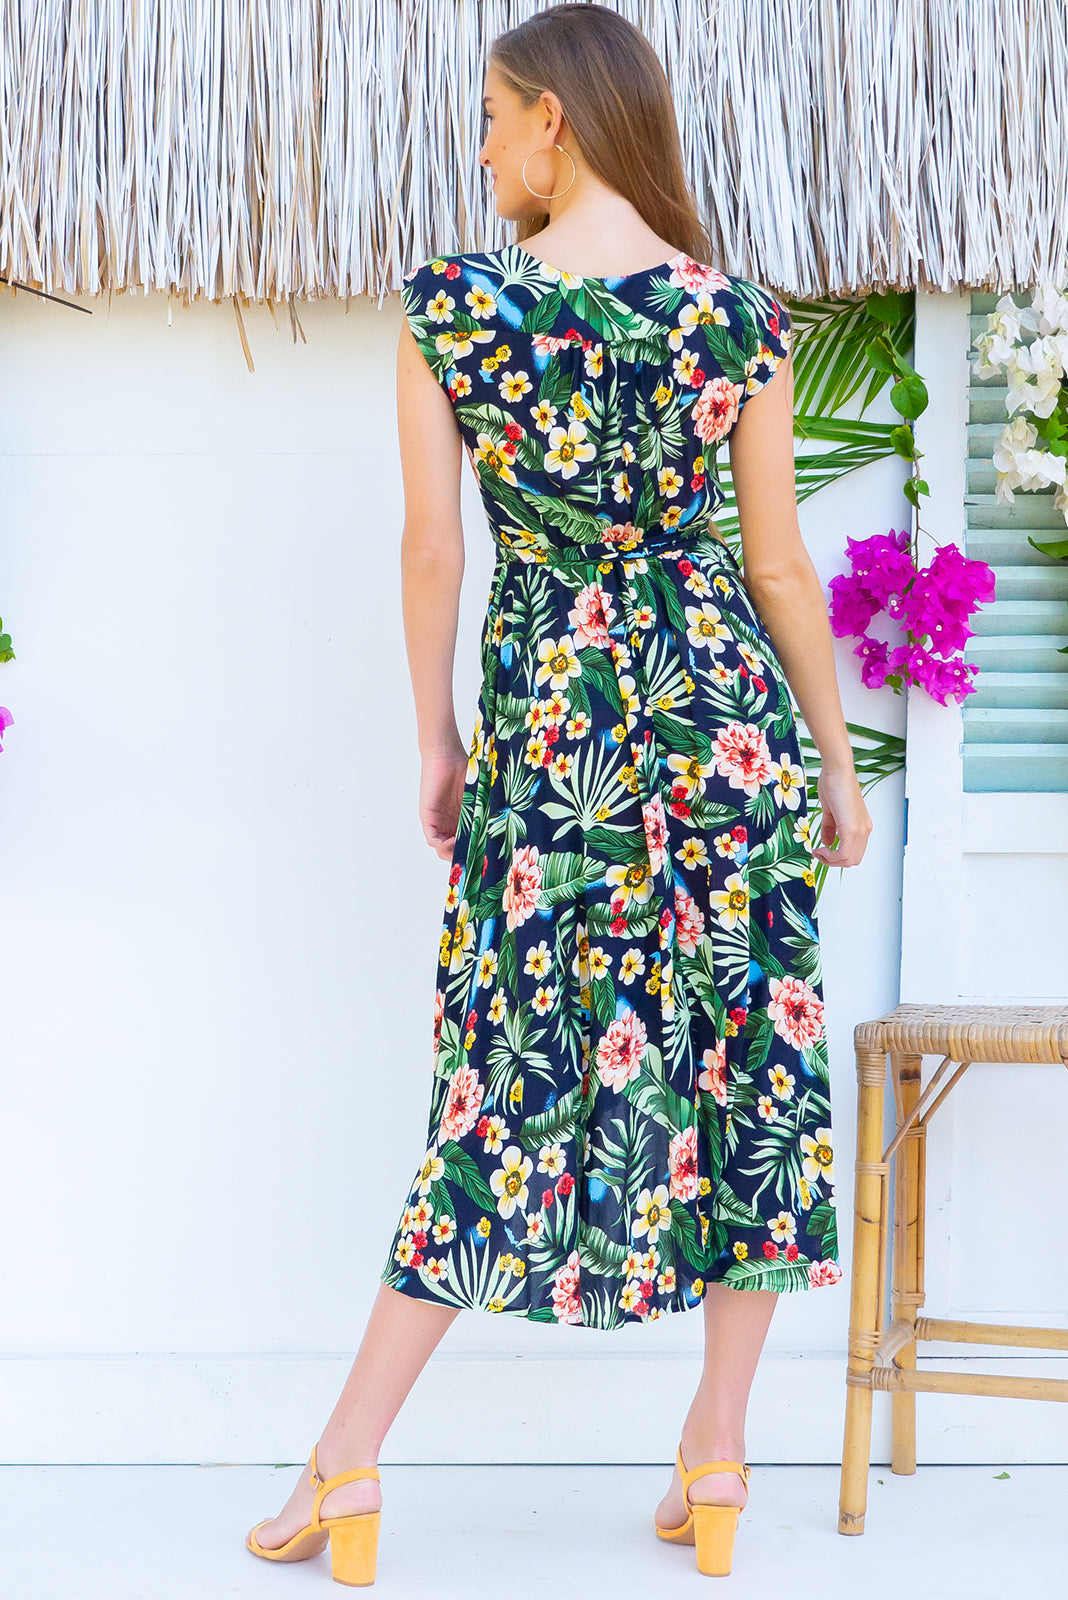 Florence Forest Noir Wrap Dress Square featuring a fitted cross over bust and flirty skirt with side pocket in a  bold tropical inspired floral print with a deep inky navy base print on a soft smooth finish rayon fabric